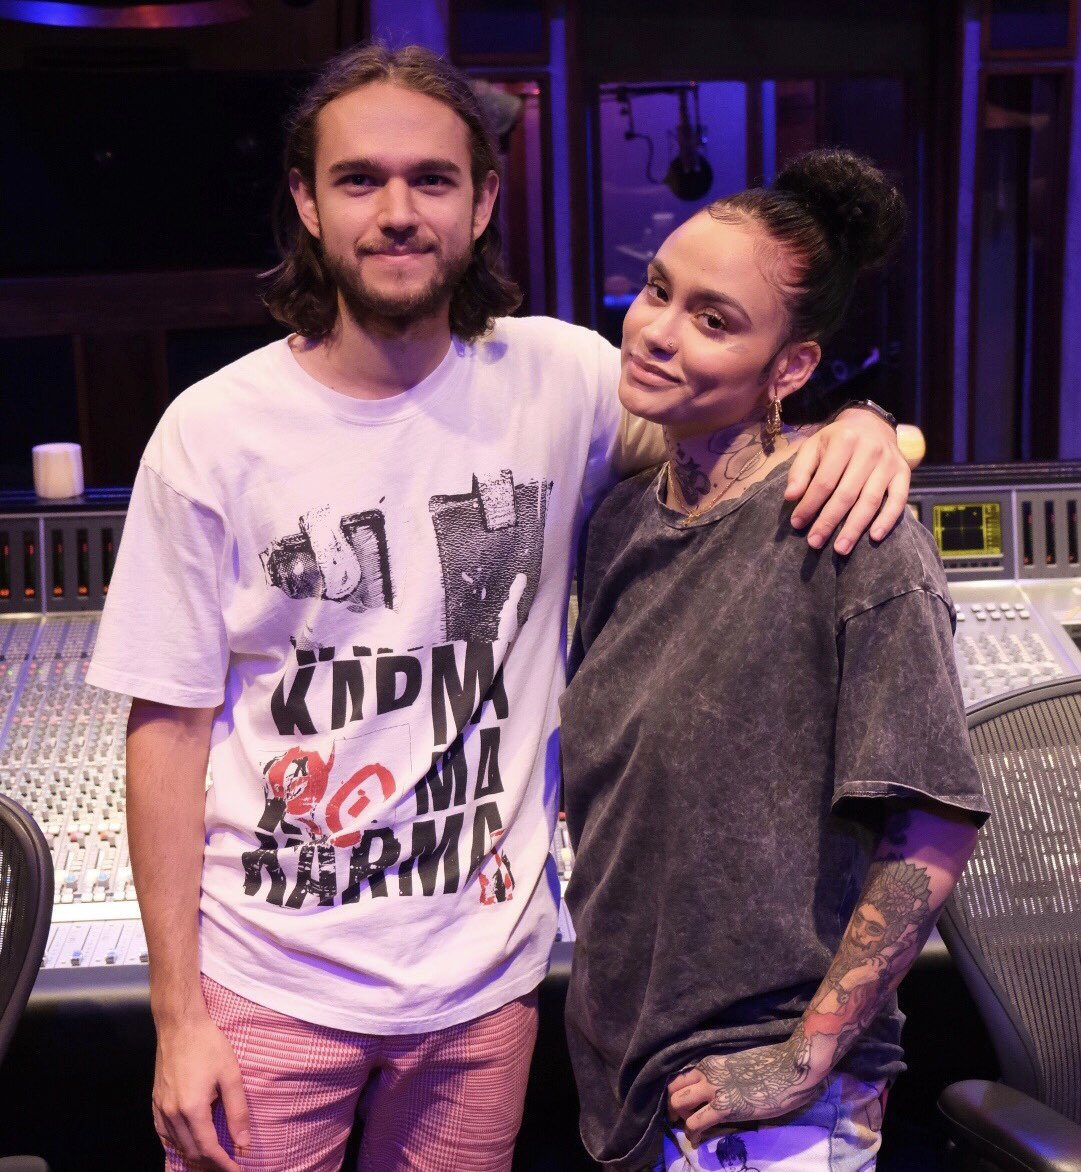 Zedd & Kehlani Set To Release New Collaboration On Sept. 27